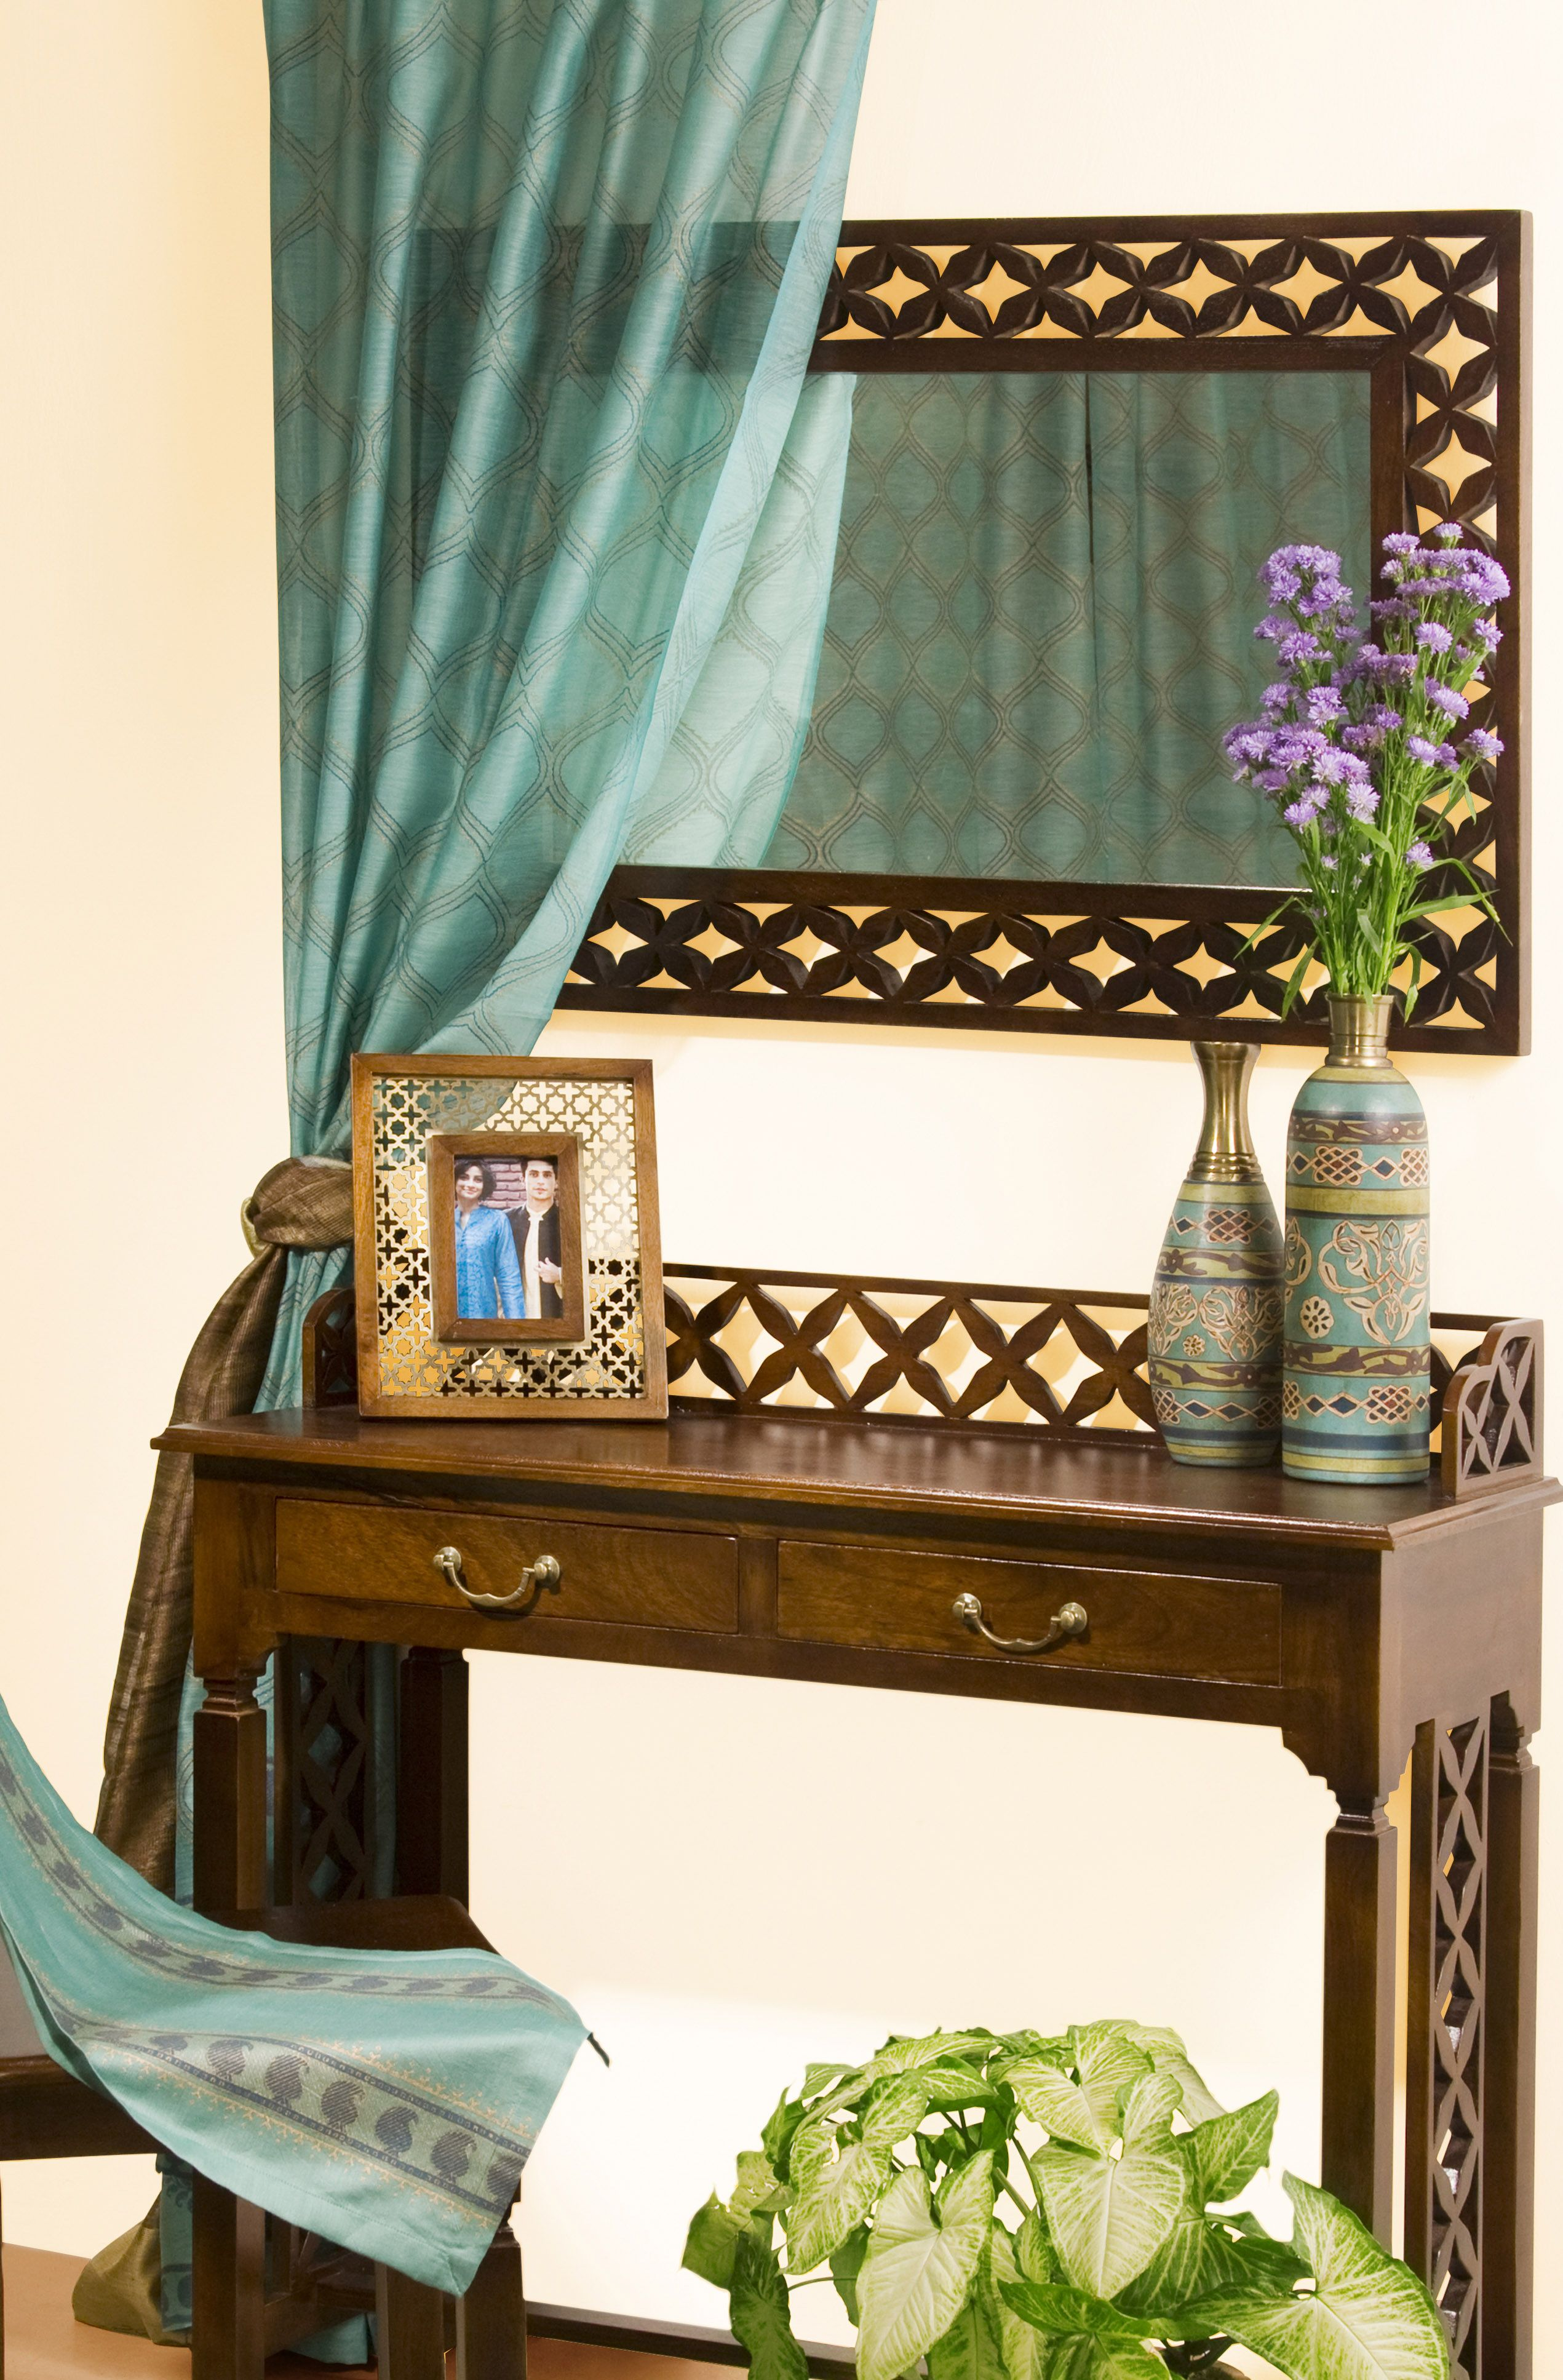 Mirror Wall Accents Corners Curtains Vases Accessories Home